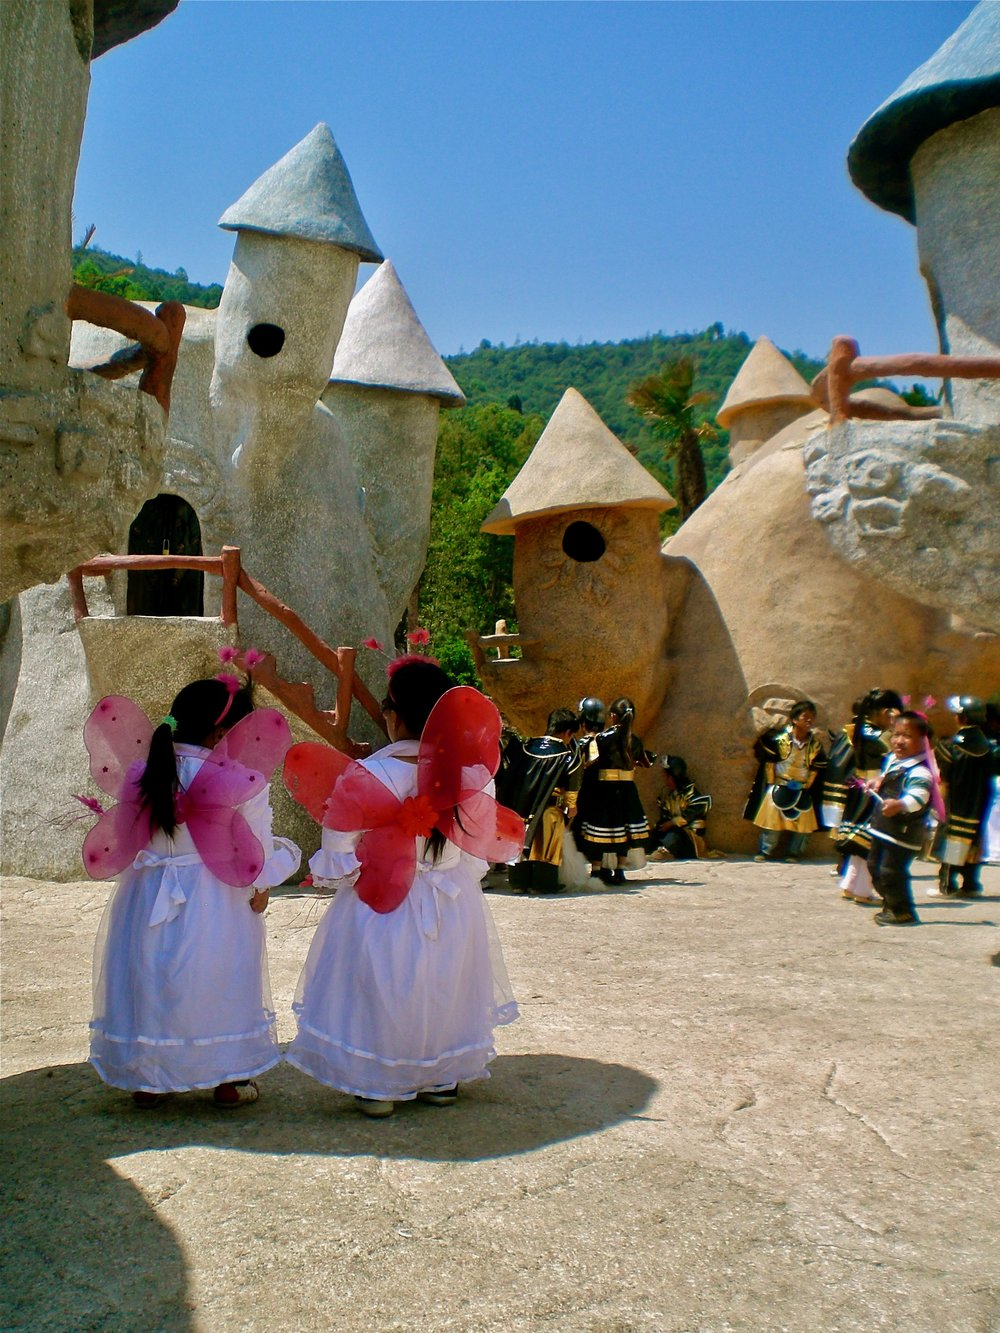 Performers at the Kingdom of the Dwarfs amusement park in Yunnan, China. (C) Remko Tanis